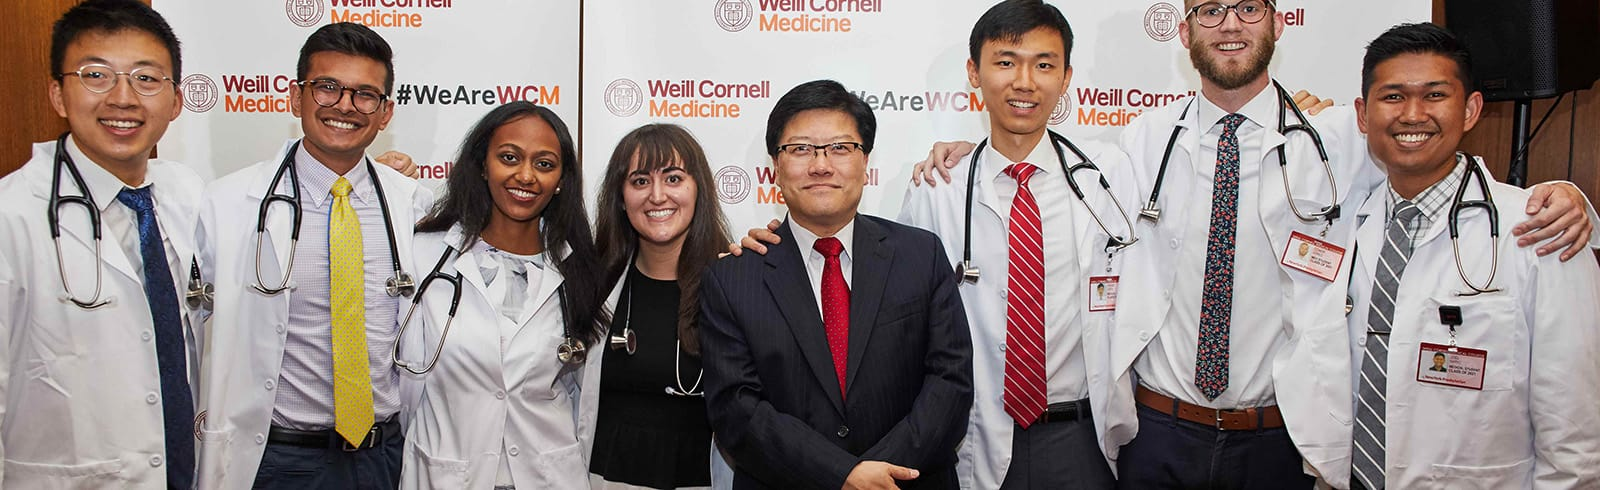 Dean Choi standing with students in white coats.